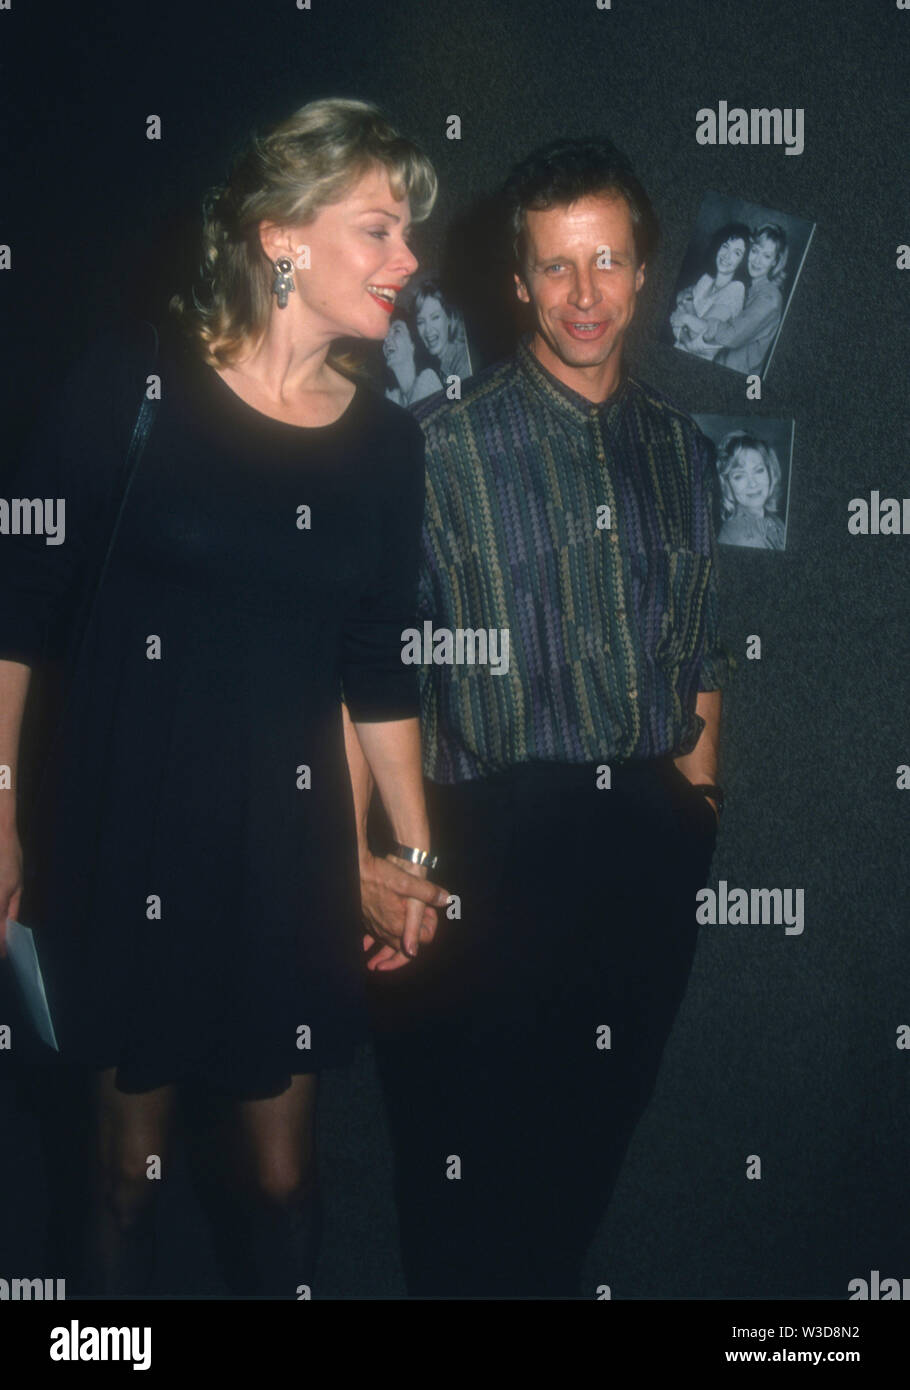 West Hollywood California Usa 23rd September 1994 Exclusive Actress Jean Smart And Husband Actor Richard Gilliland Attend The Opening Of Marvin S Room On September 23 1994 At Tiffany Theater In West Hollywood Jean plays aunt audrey, who took in her sister's two kids after her sister's recent suicide. https www alamy com west hollywood california usa 23rd september 1994 exclusive actress jean smart and husband actor richard gilliland attend the opening of marvins room on september 23 1994 at tiffany theater in west hollywood california usa photo by barry kingalamy stock photo image260291726 html